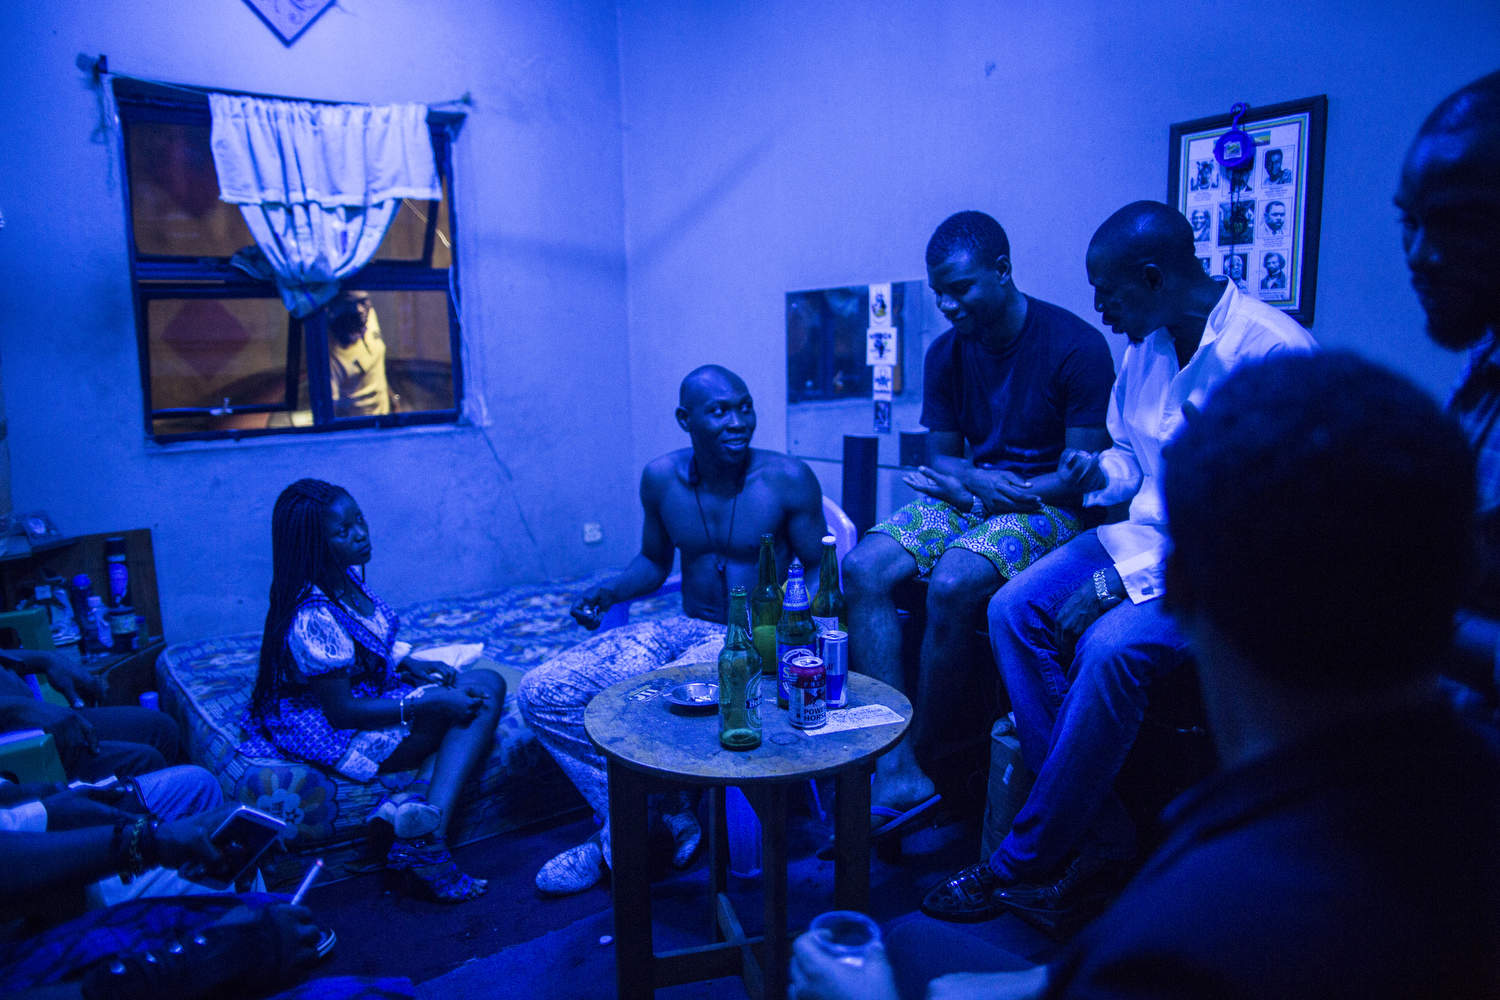 Seun Kuti, one of Fela's youngest sons, hangs out backstage after a show. Though he is less popular than his elder brother Femi, many say his music is closer to Fela's original beats.